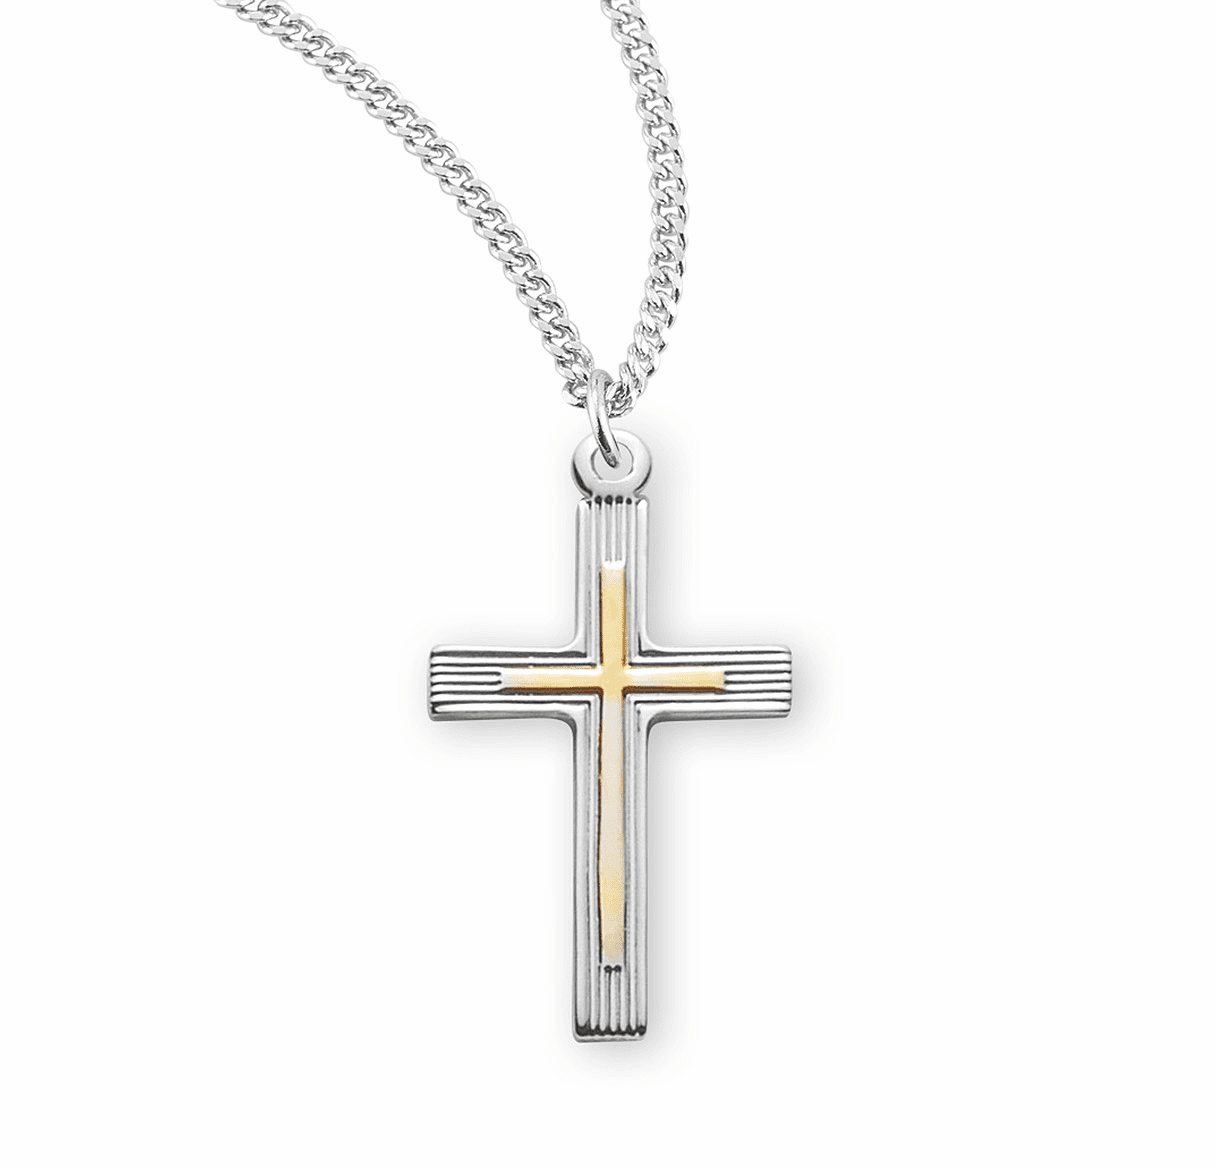 HMH Religious Small Fancy Tu-Tone Sterling Silver Cross Necklace